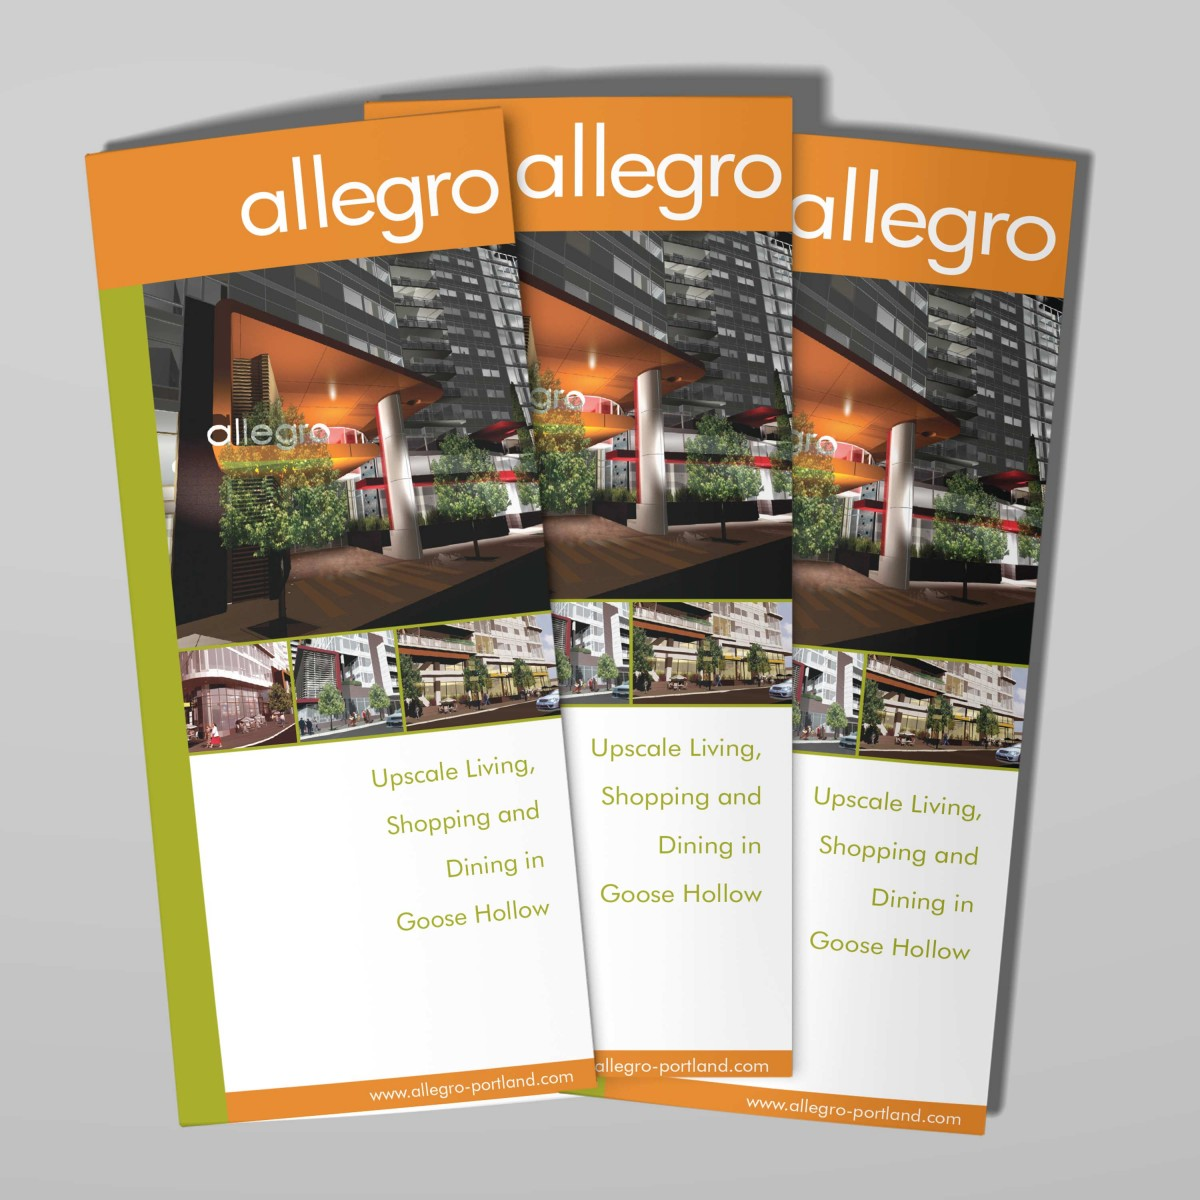 Allegro mixed use development tri-fold brochure cover